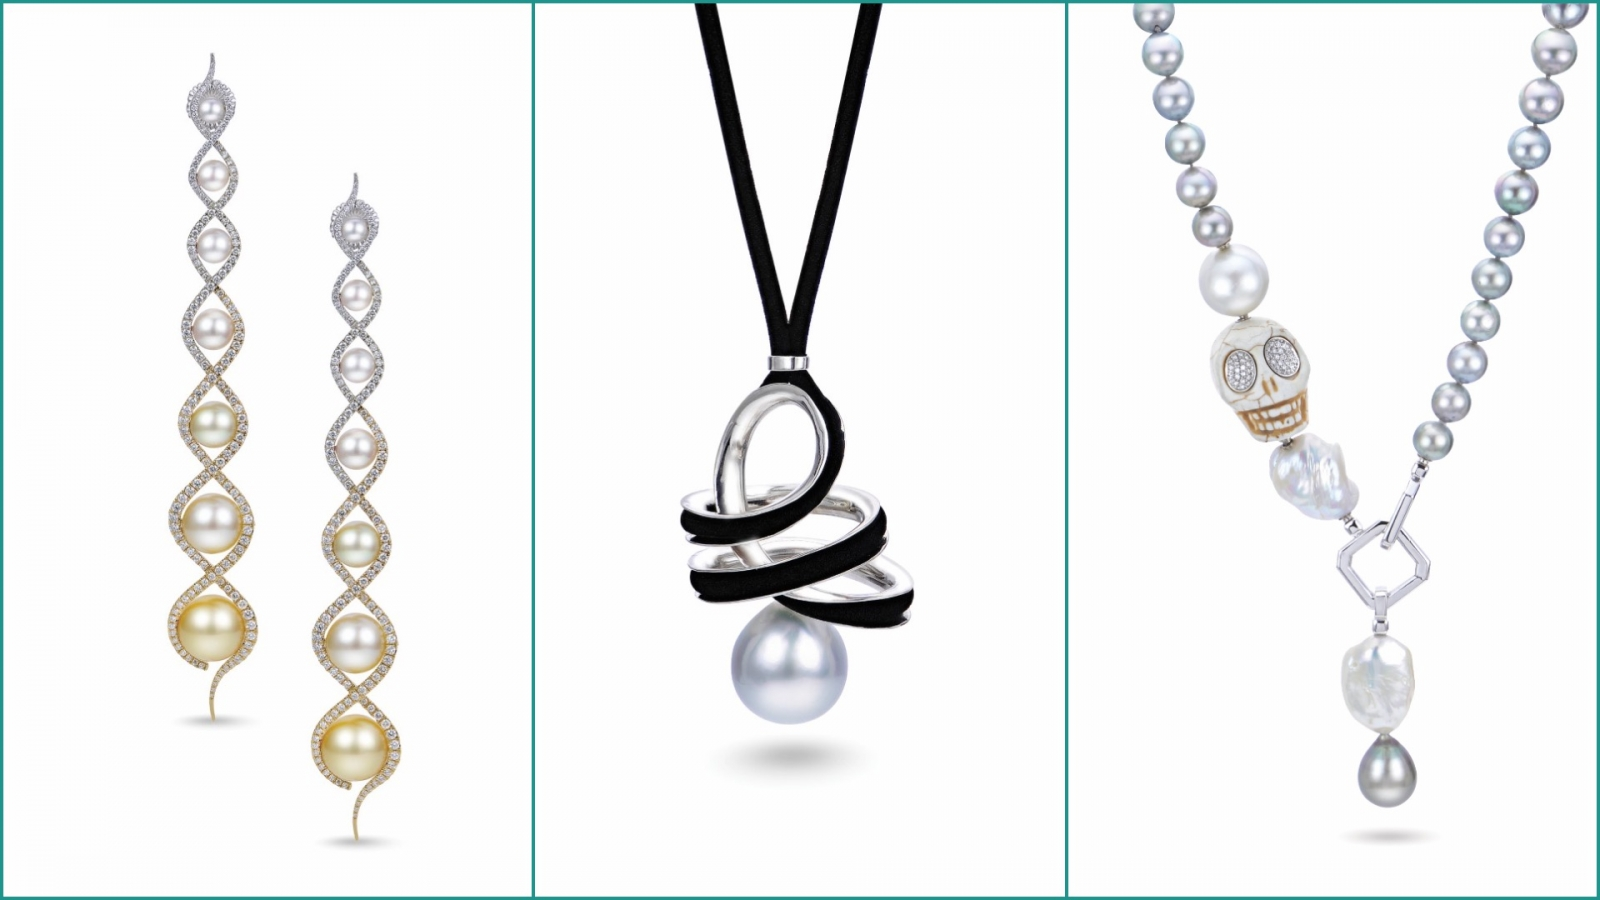 Three pearl jewelry pieces that will be shown at Max's in the upcoming weeks. Photo courtesy Max's.